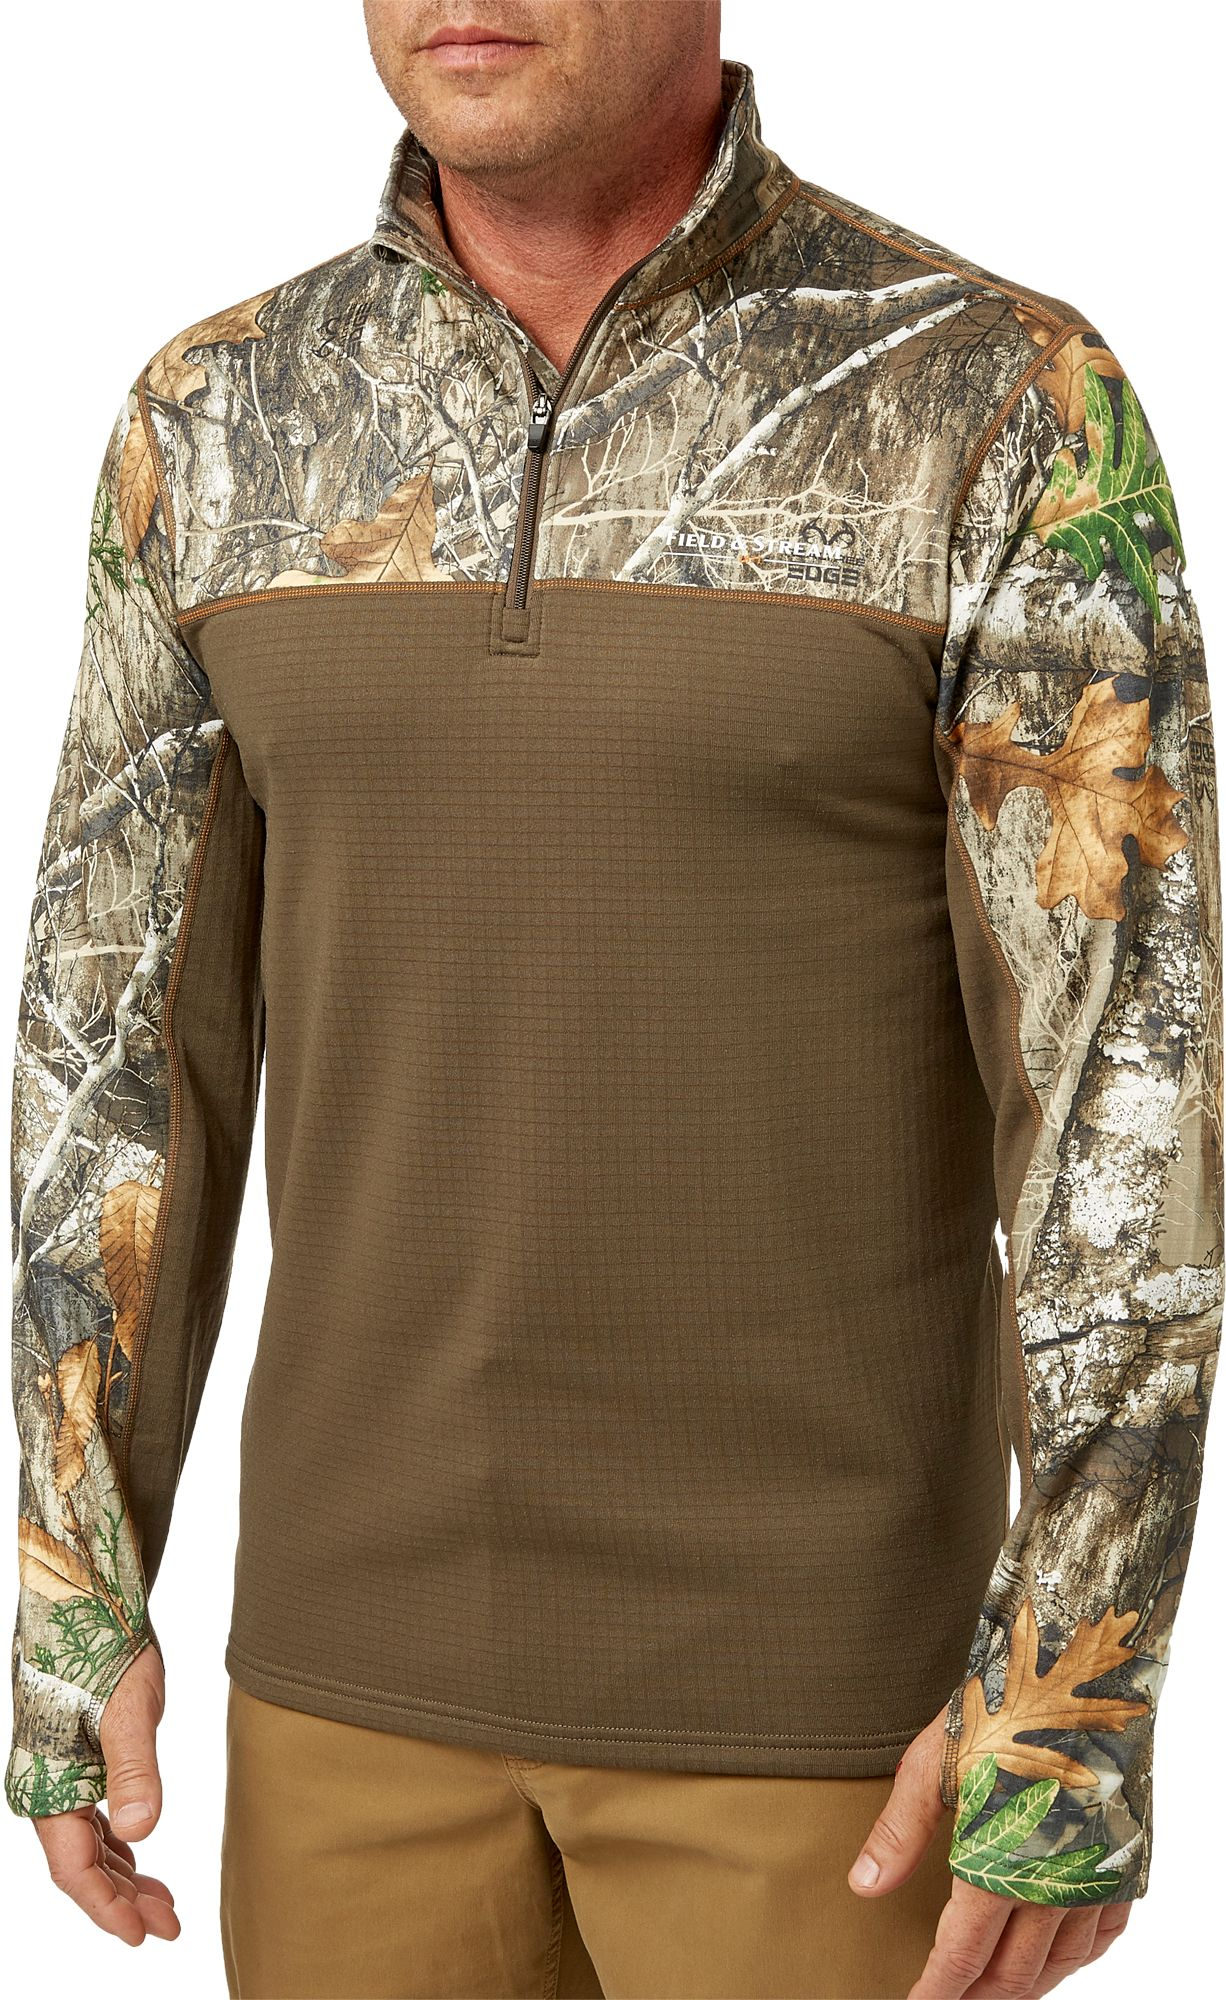 Field & Stream Men's Base Defense Expedition Weight Quarter Zip Pullover, Size: Medium, Multi thumbnail